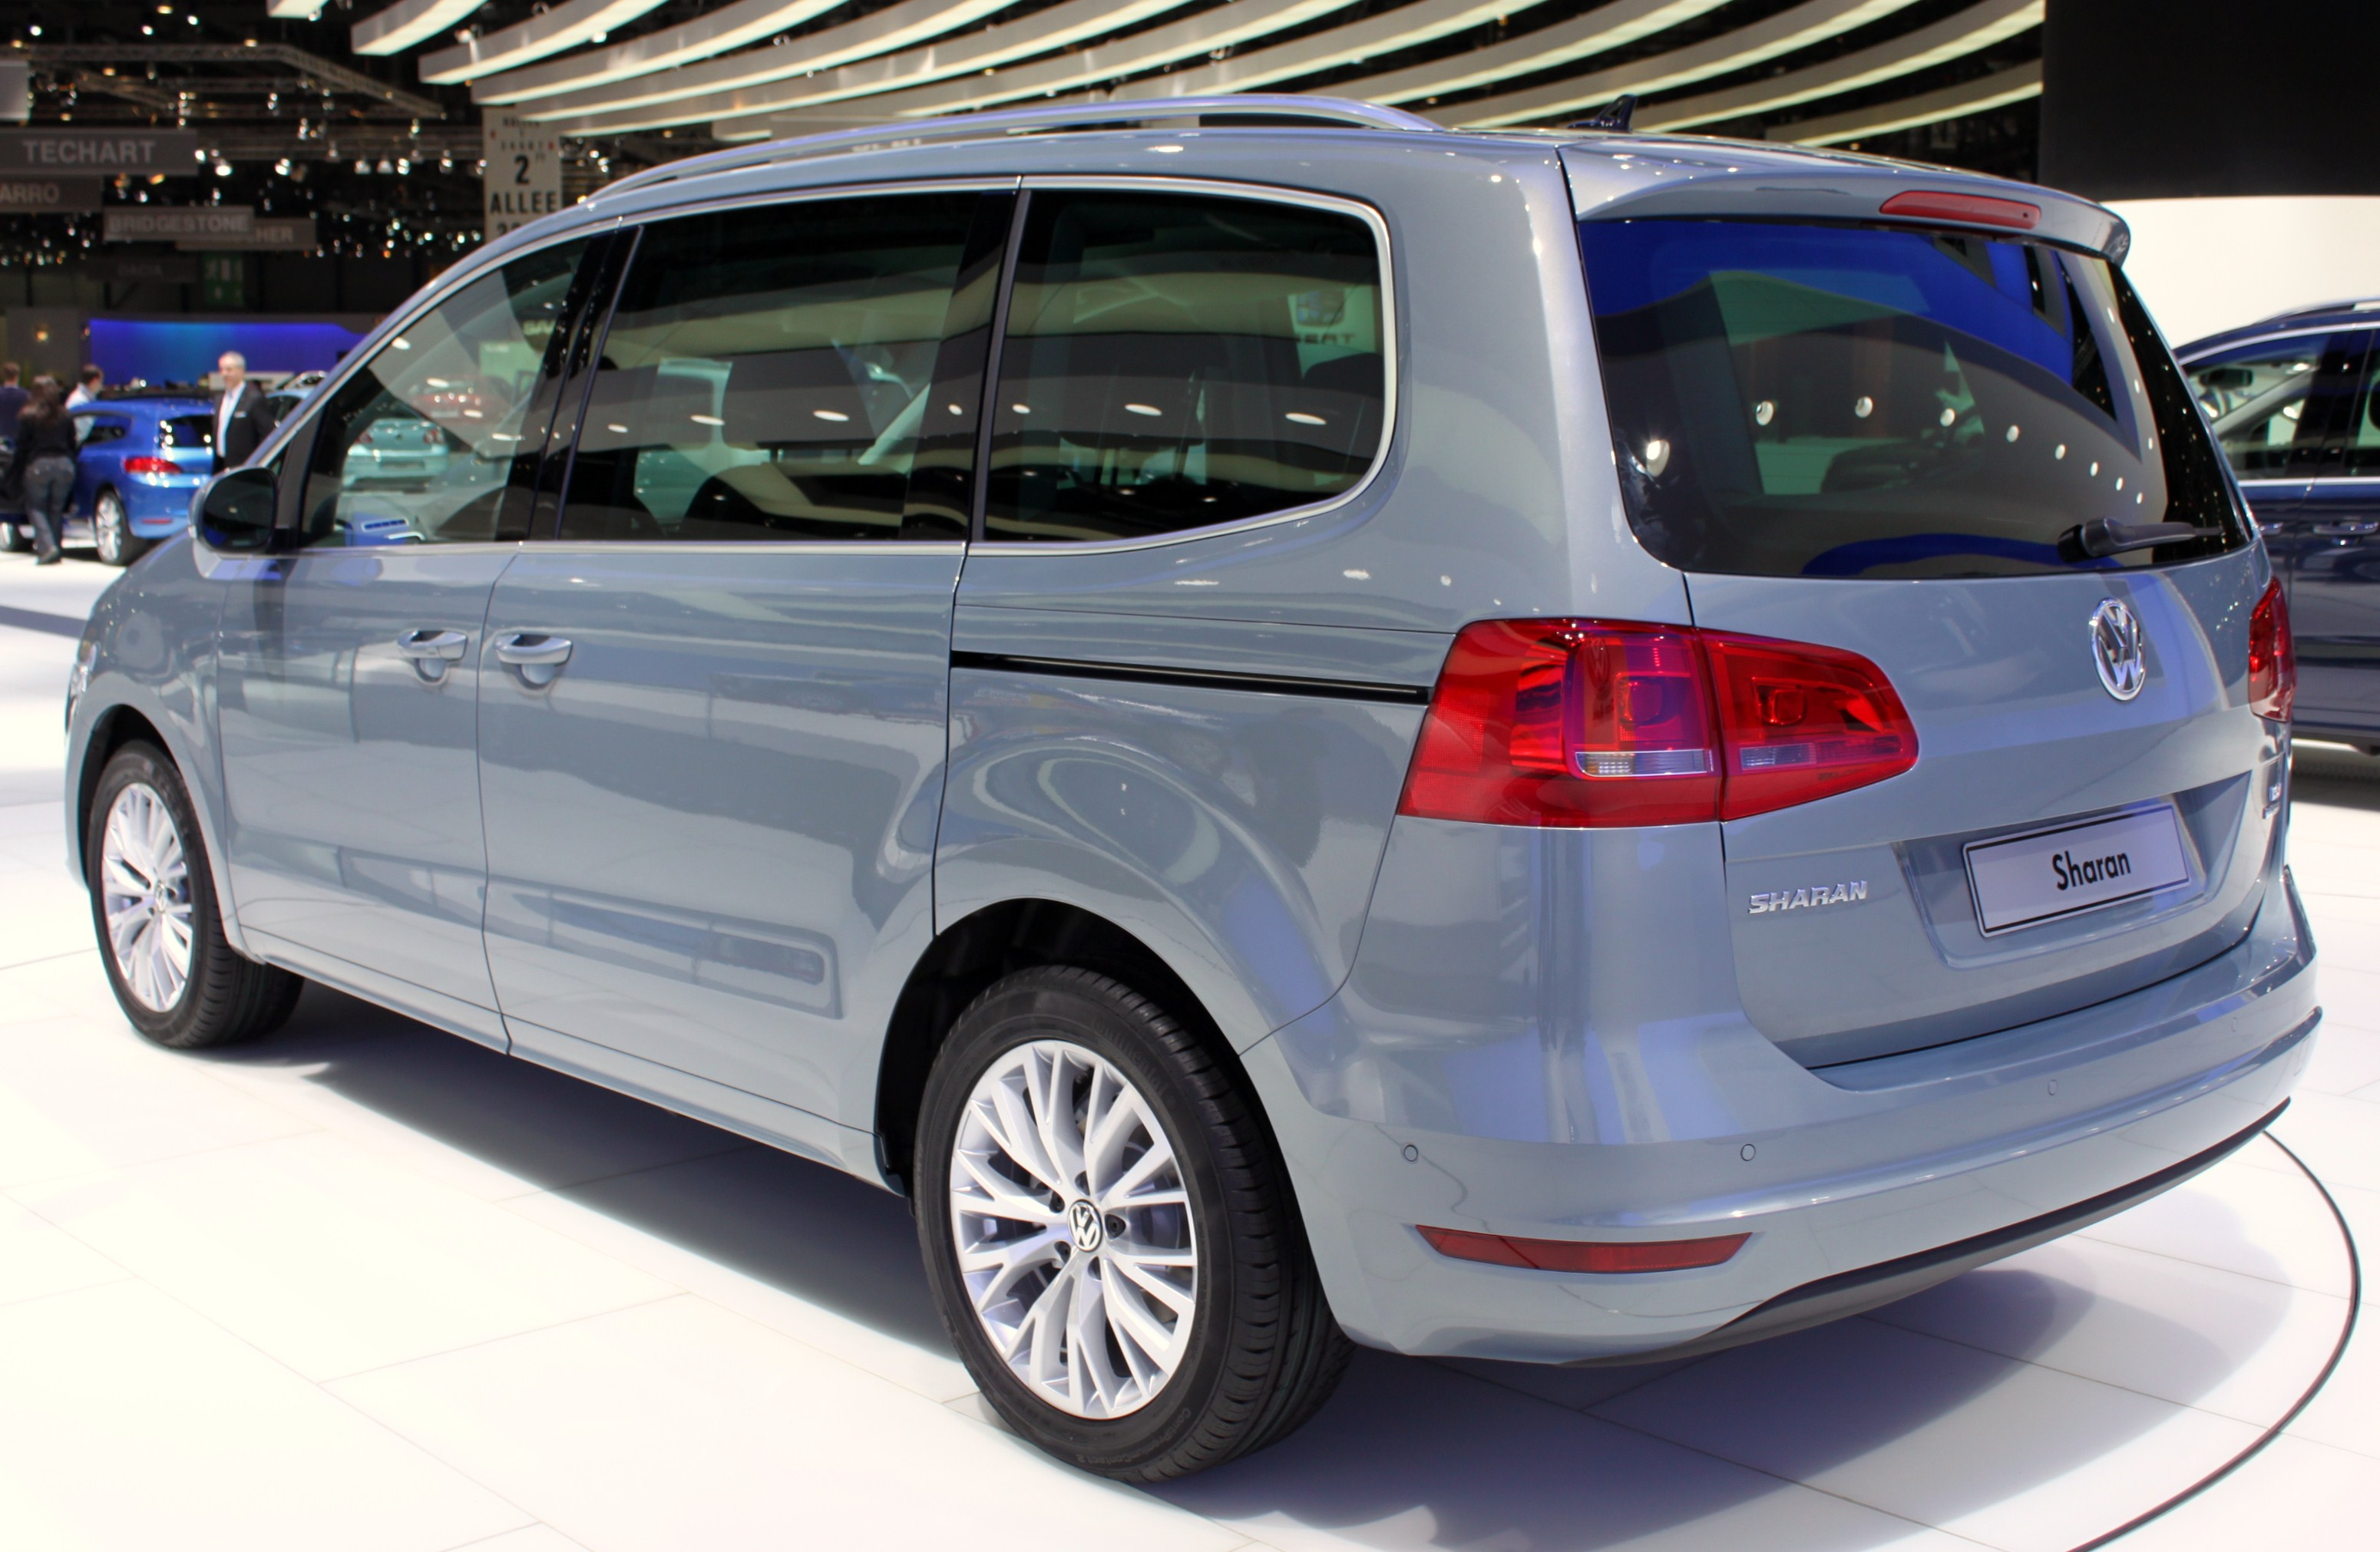 File:VW Sharan (4).JPG - Wikimedia Commons